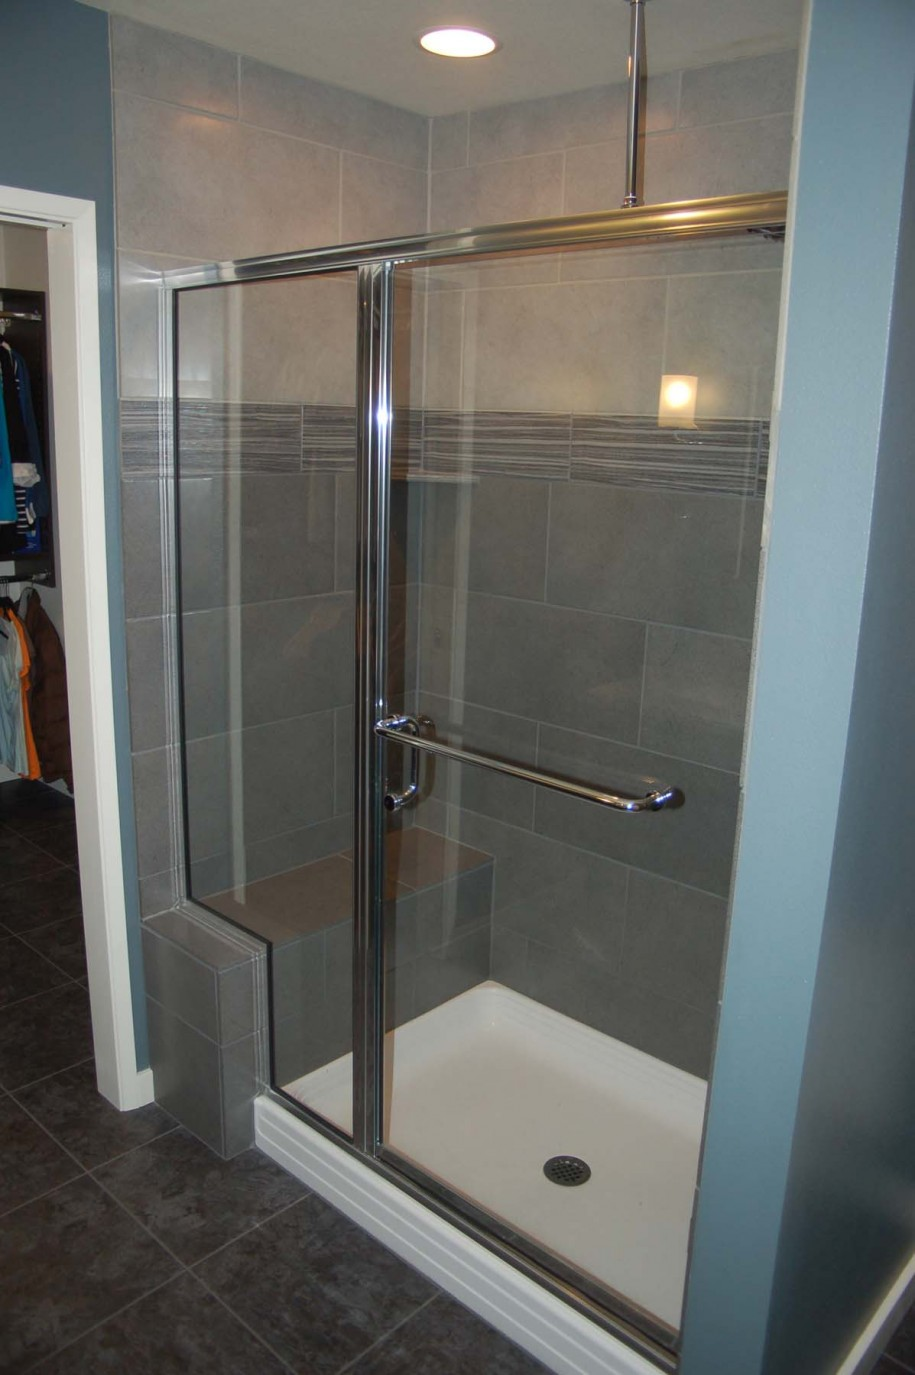 bathroom-modern-bathroom-shower-room-design-with-glass-door-and-stainless-frame-combine-with-grey-tile-wall-and-white-shower-pan-also-rectangular-shower-bench-bathroom-shower-tile-ideas-photos